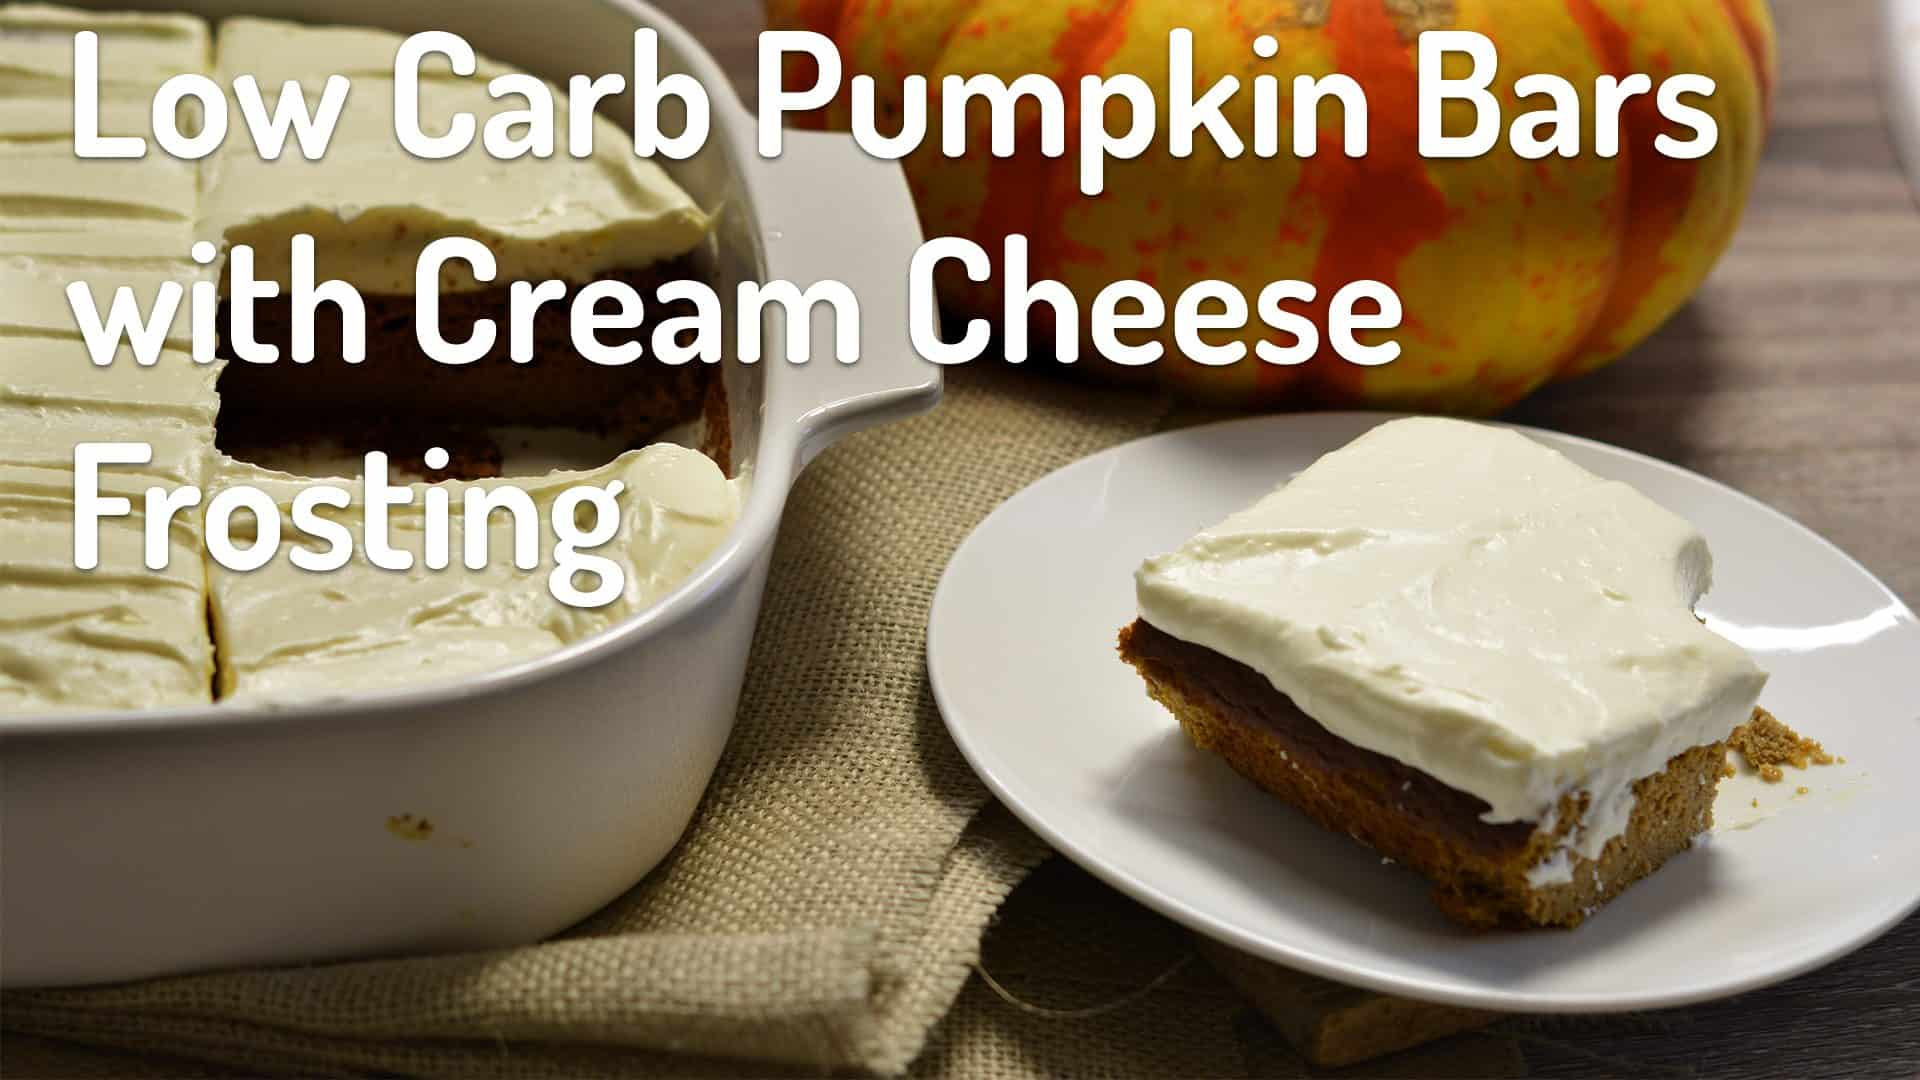 low carb pumpkin bars photo titled low carb pumpkin bars with cream cheese frosting